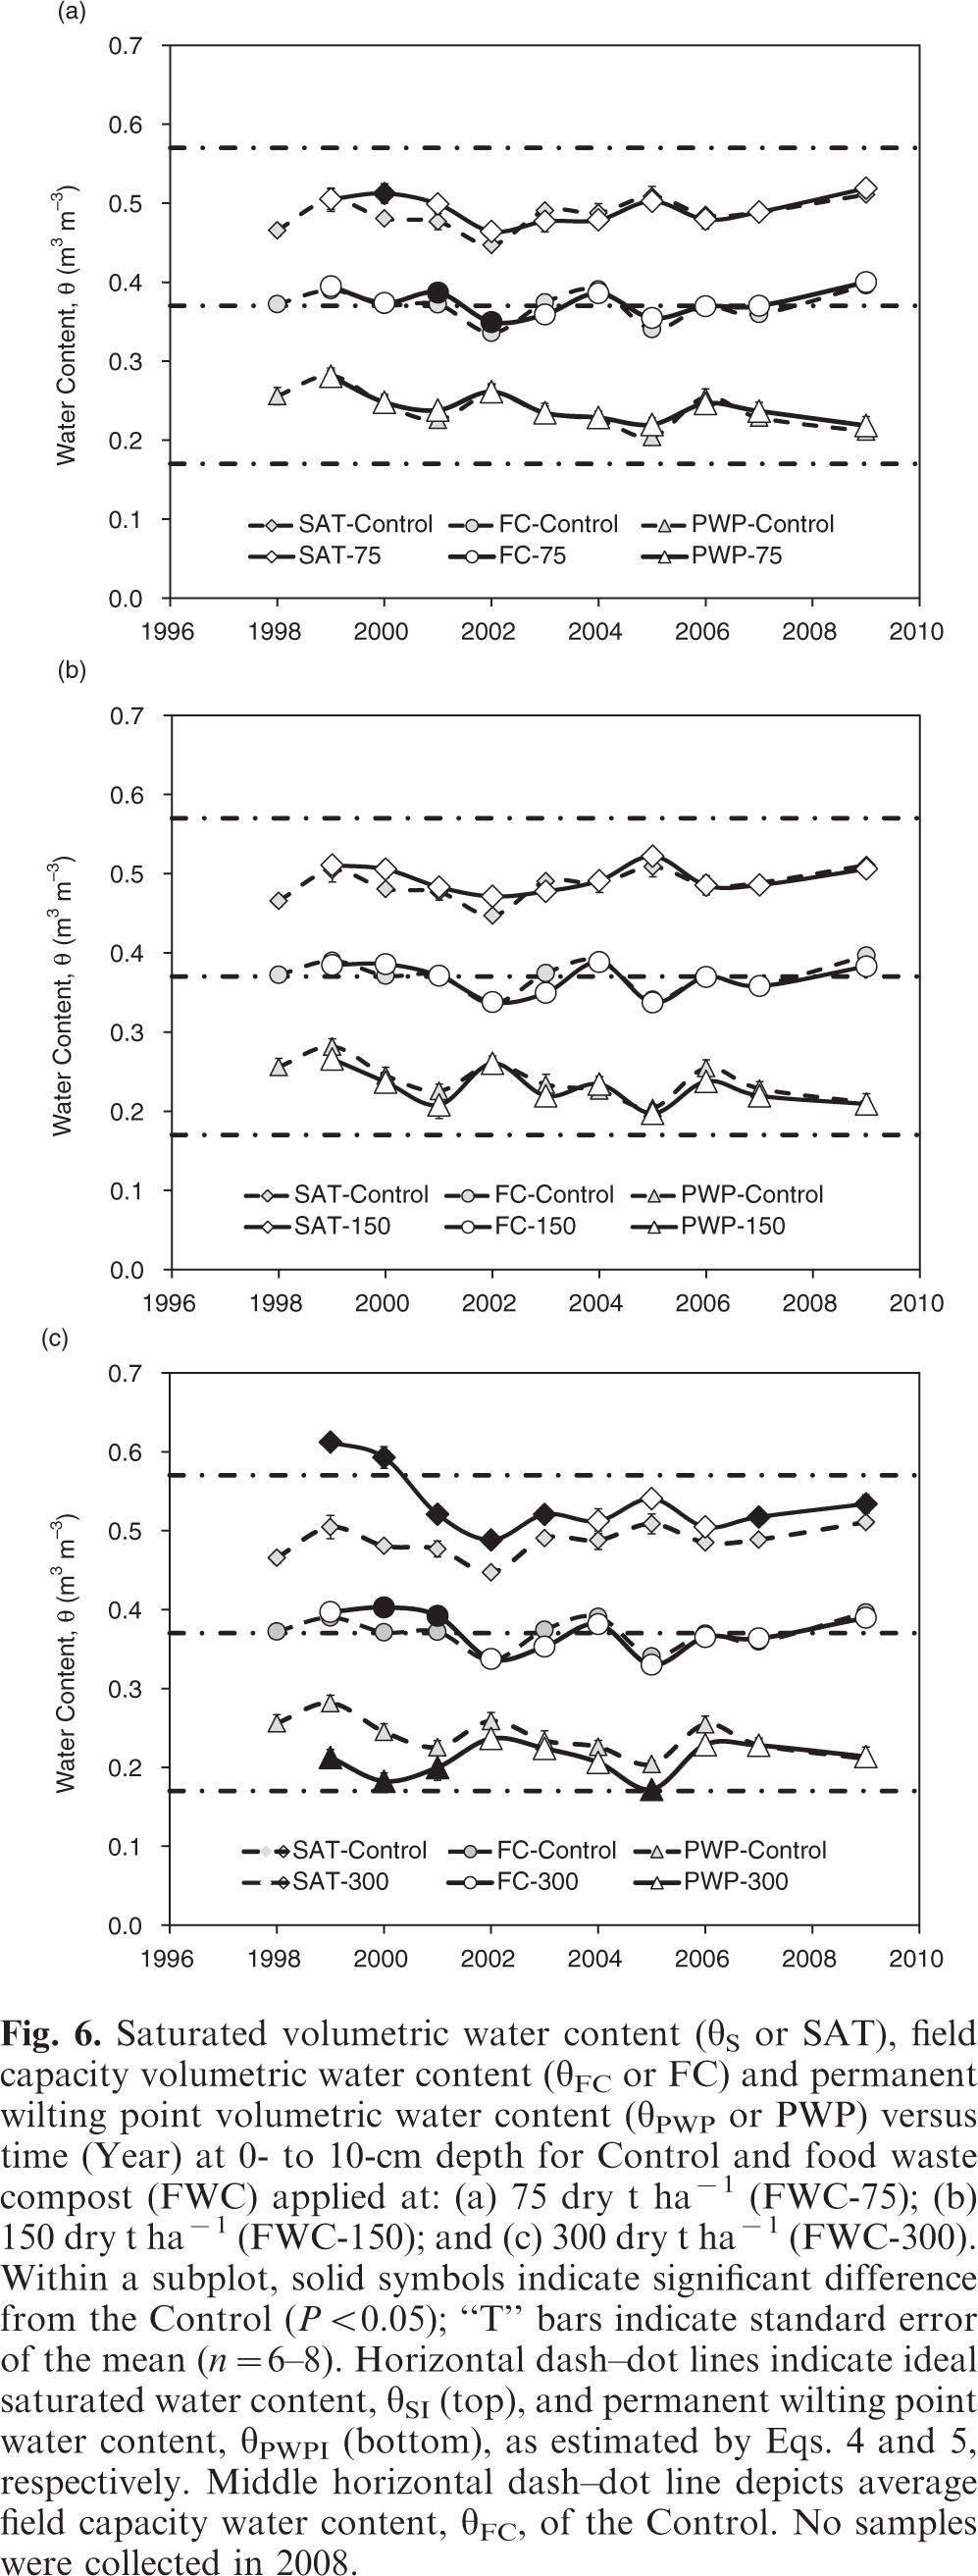 Temporal effects of food waste compost on soil physical